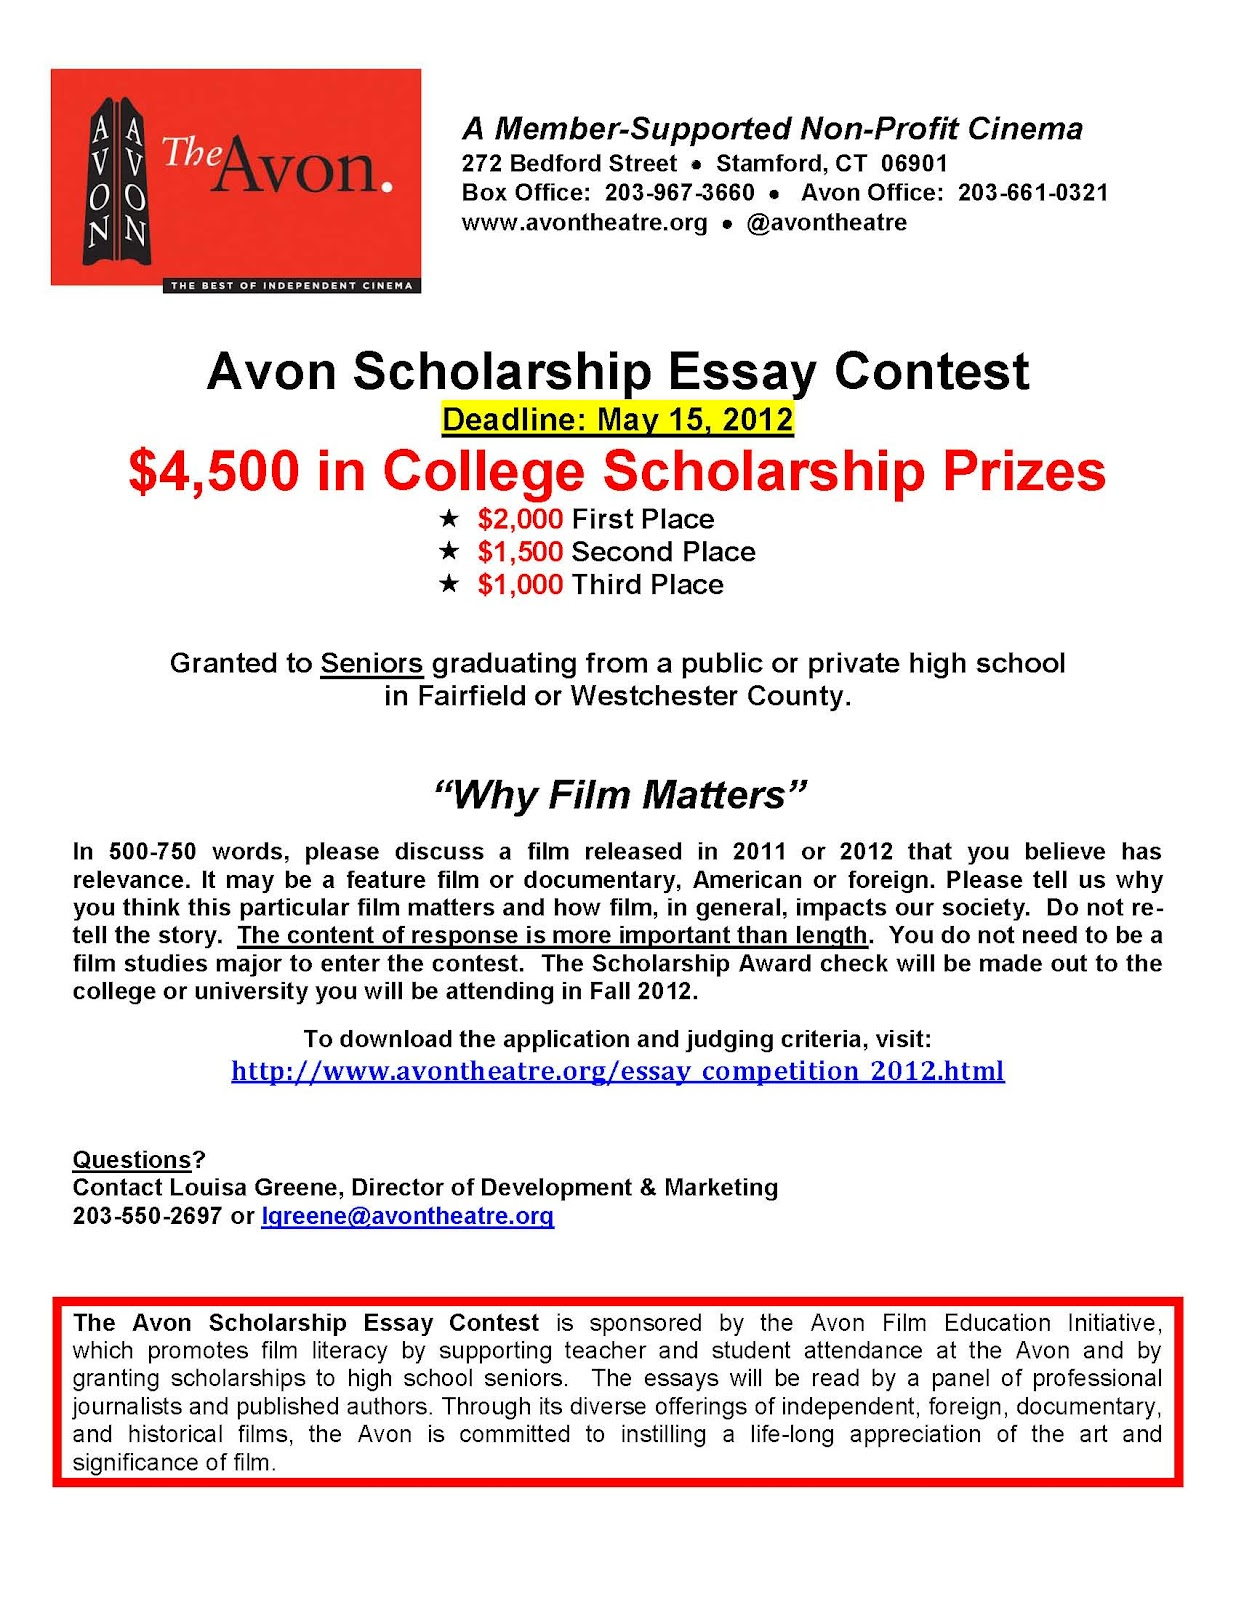 016 Avonscholarshipessaycontest2012flyer Essay Example Shocking Scholarships For High School Sophomores No 2018 Full